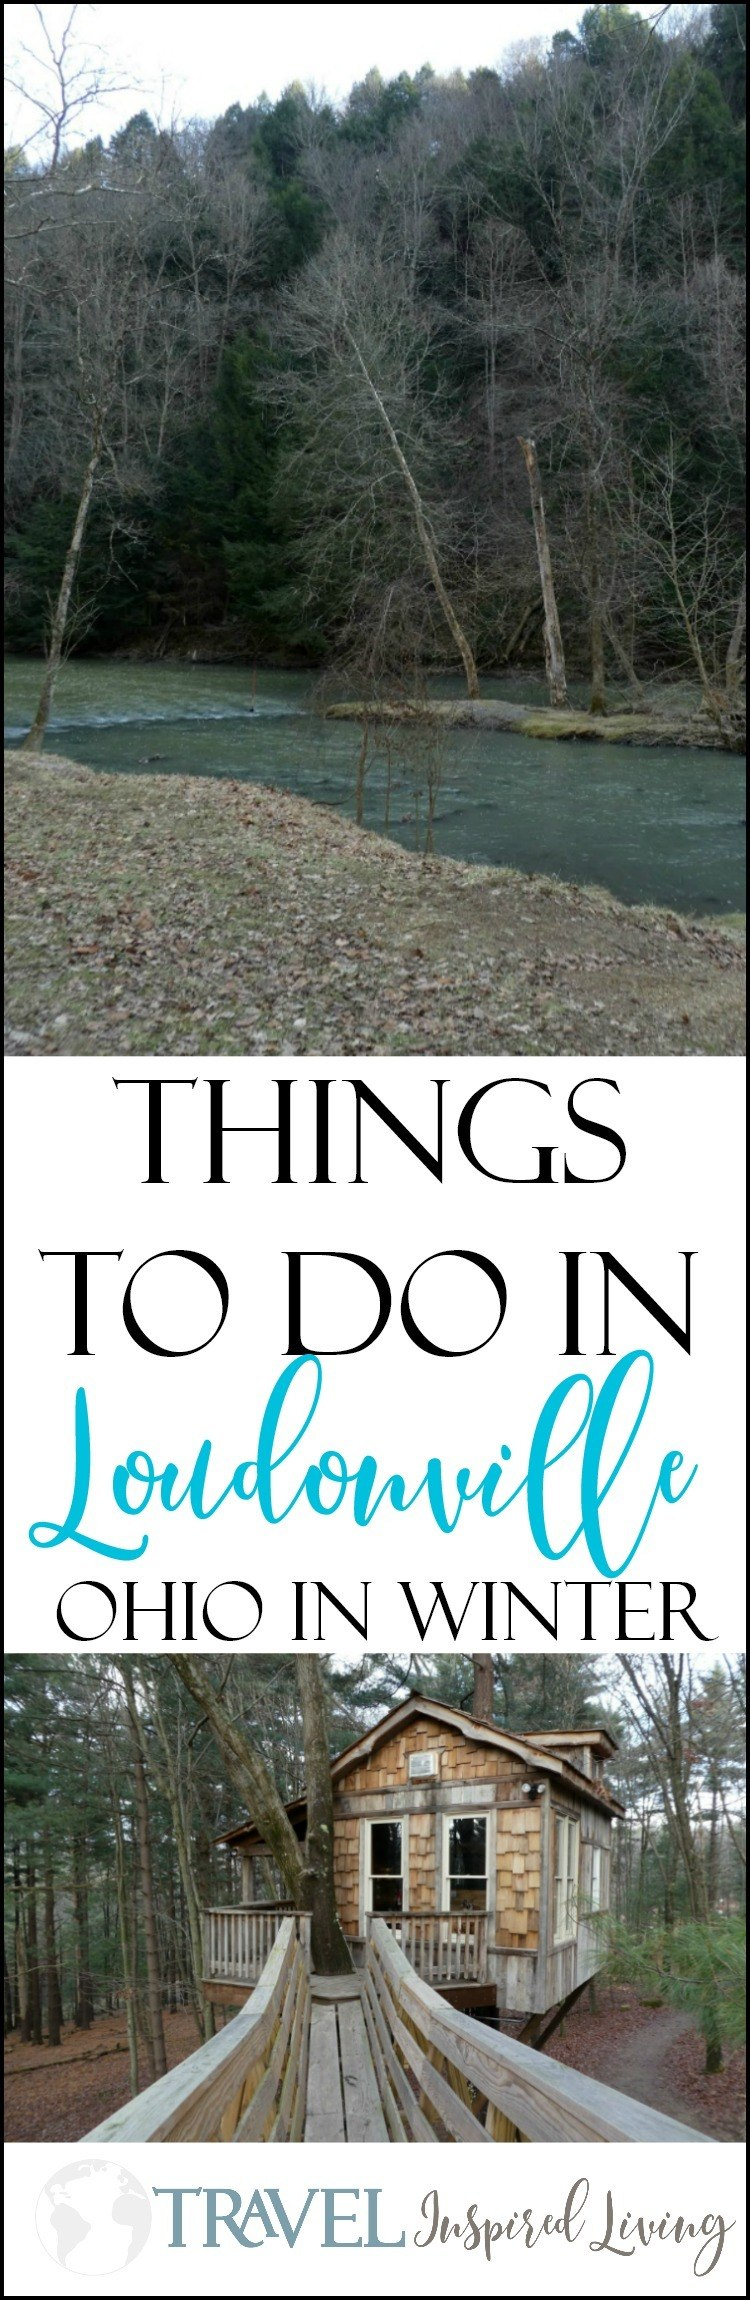 Things to do in Loudonville Ohio in Winter